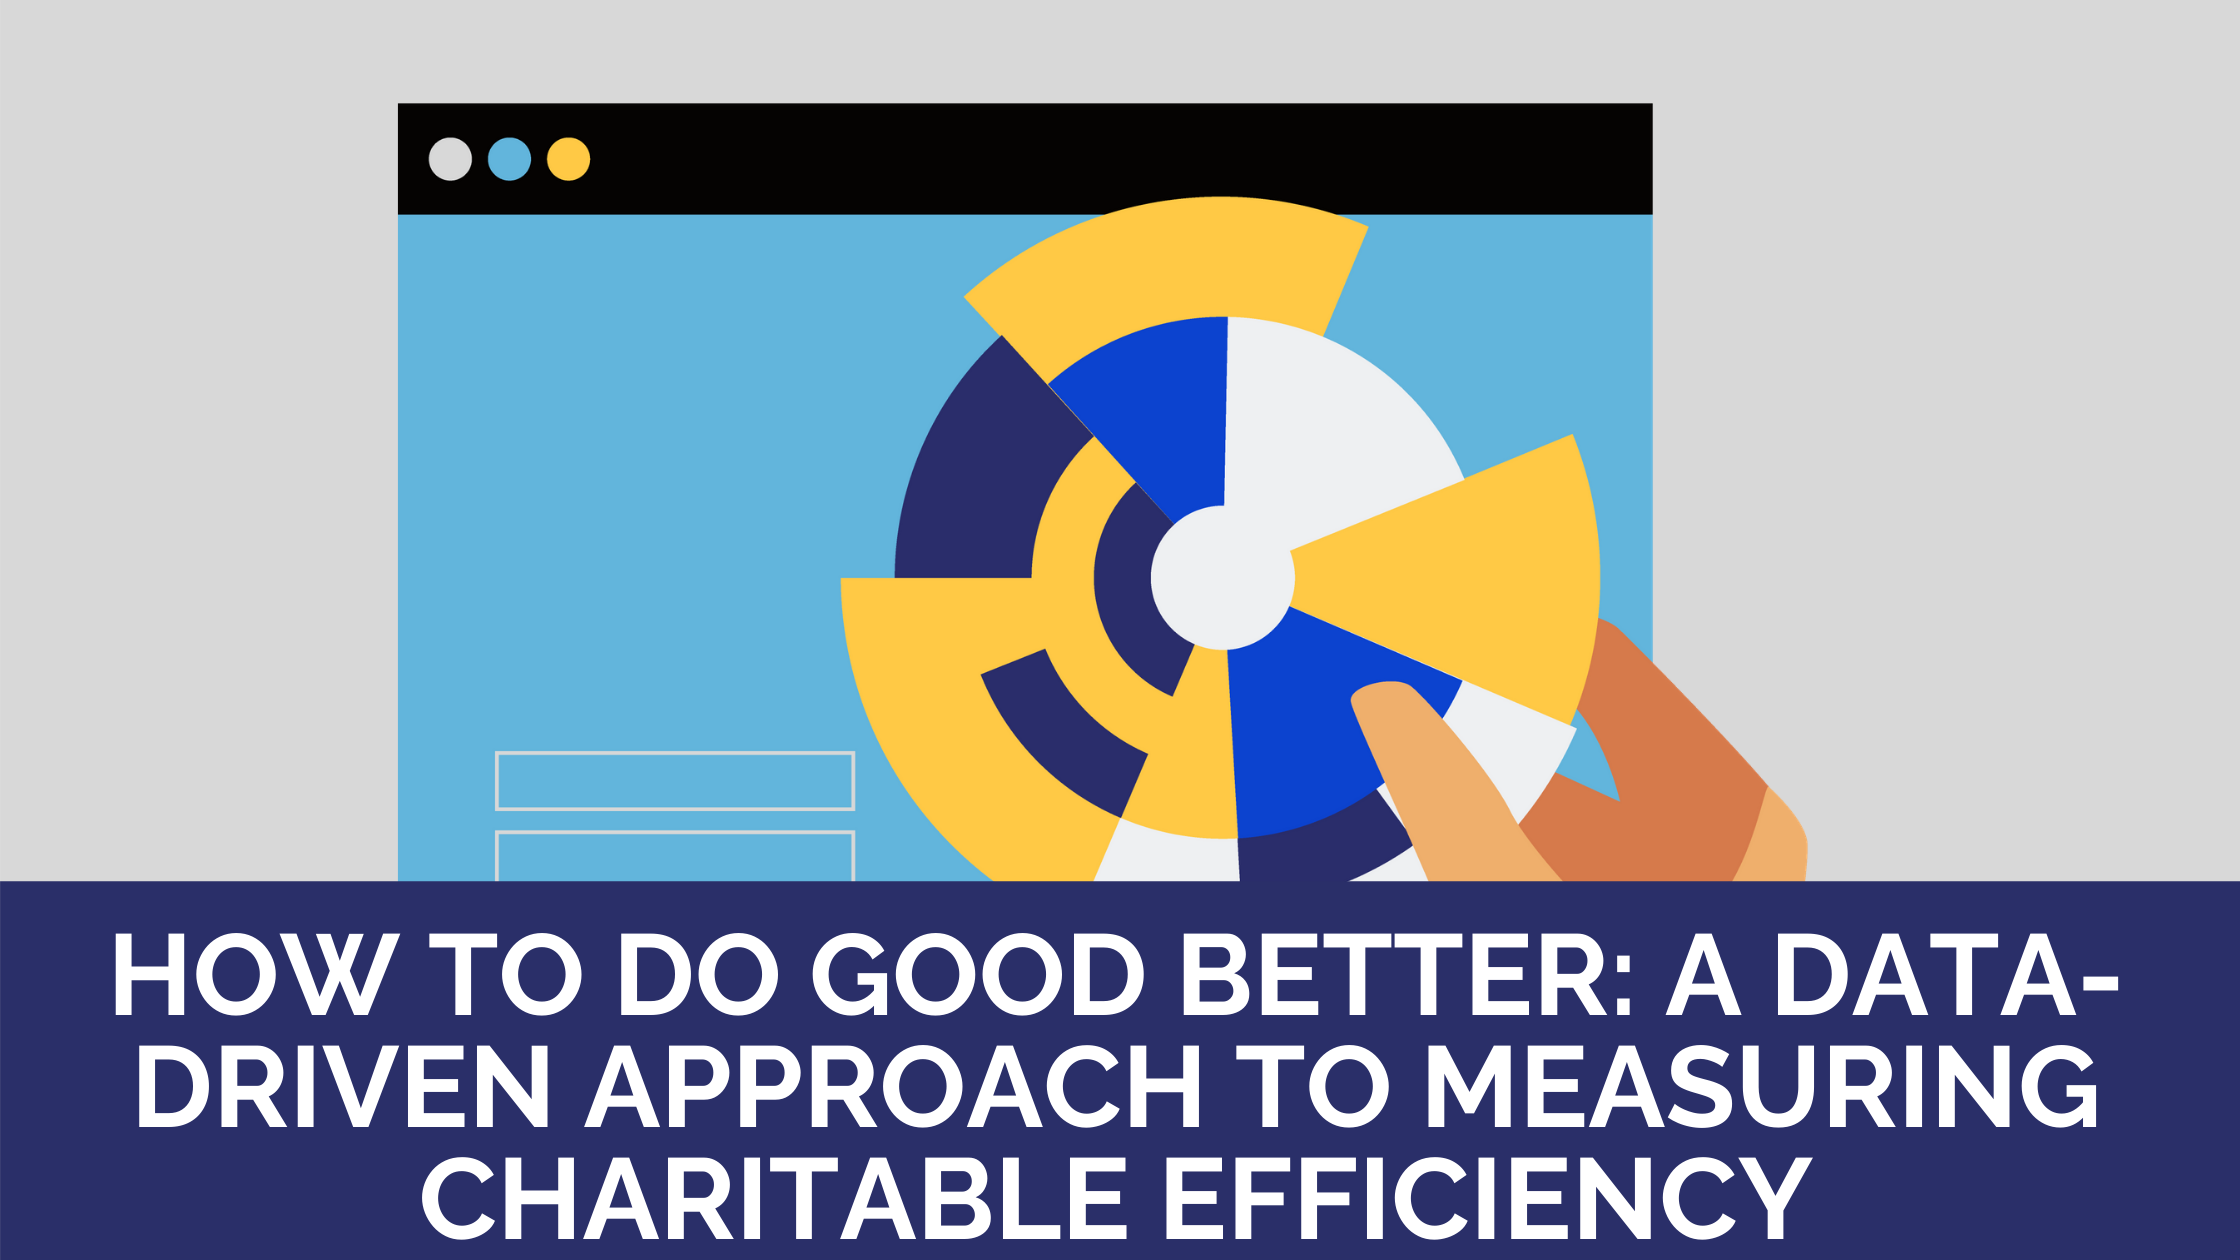 How to Do Good Better: A data-driven approach to measuring charitable efficiency